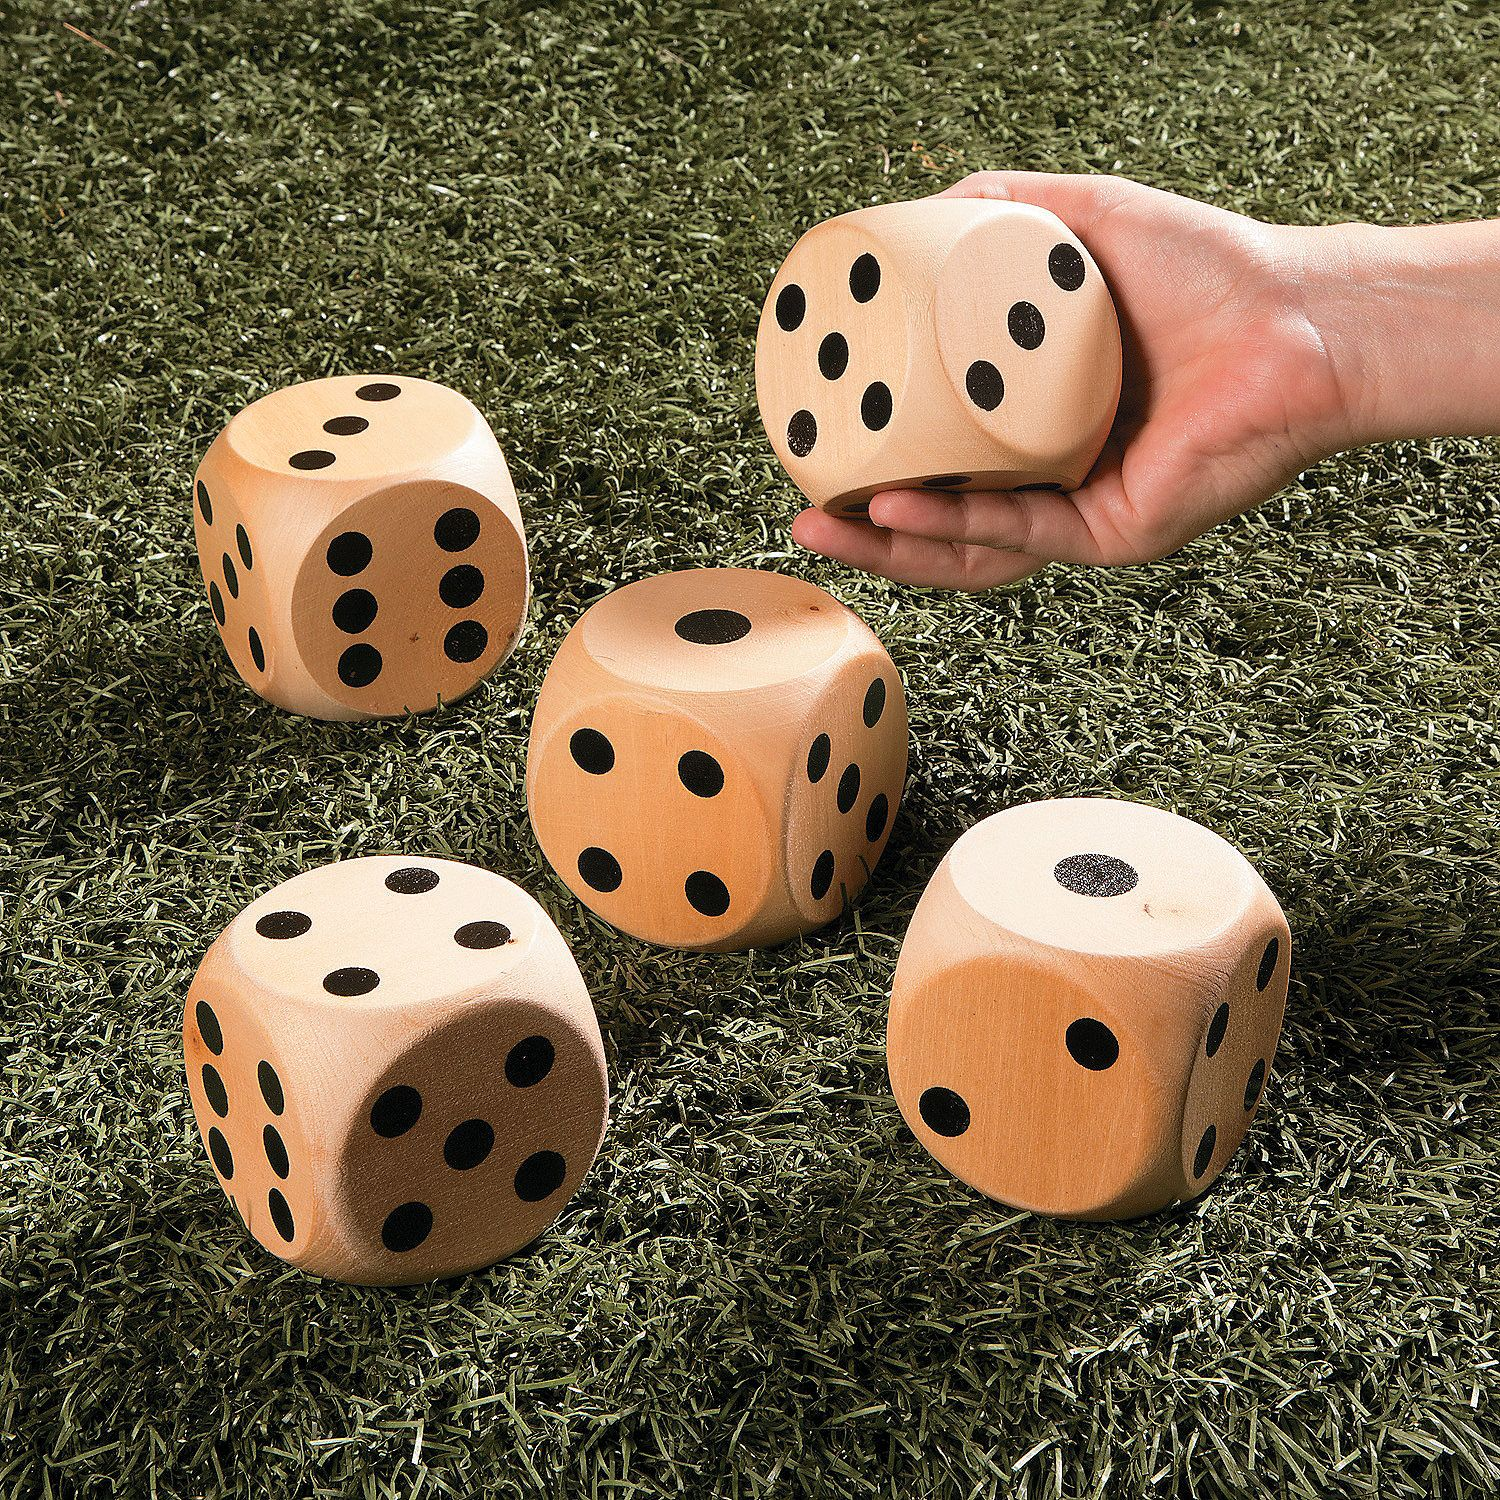 Garden Dice Game Discontinued Dice games, Life size